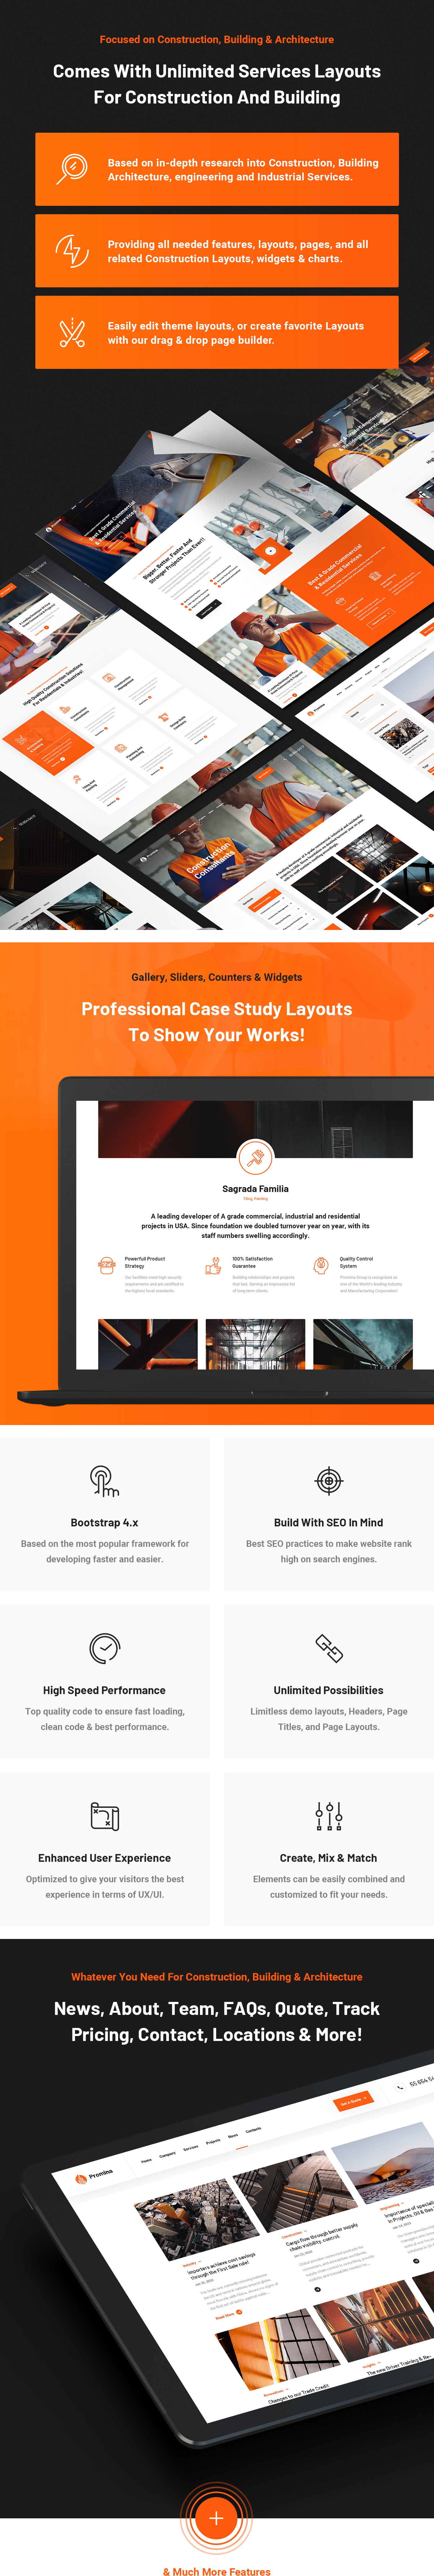 Promina - Construction and Building HTML5 Template - 7